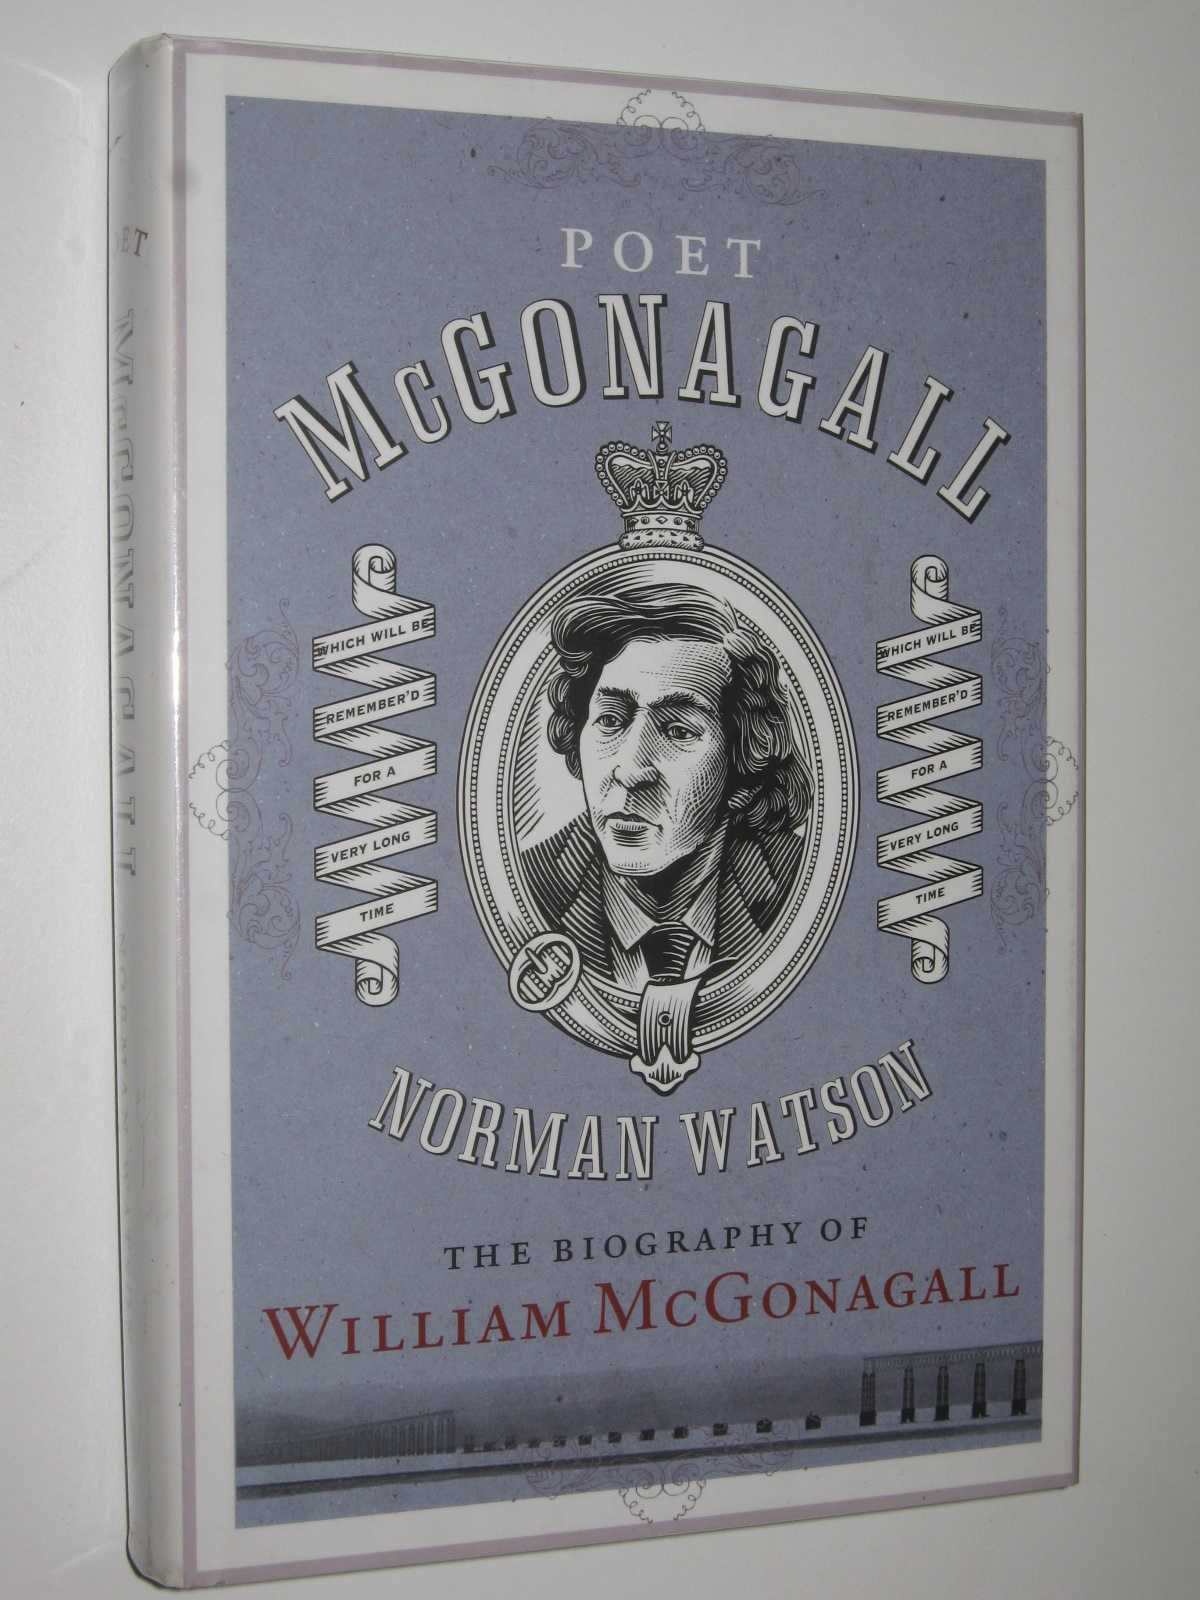 Image for Poet McGonagall : The Biography of William McGonagall